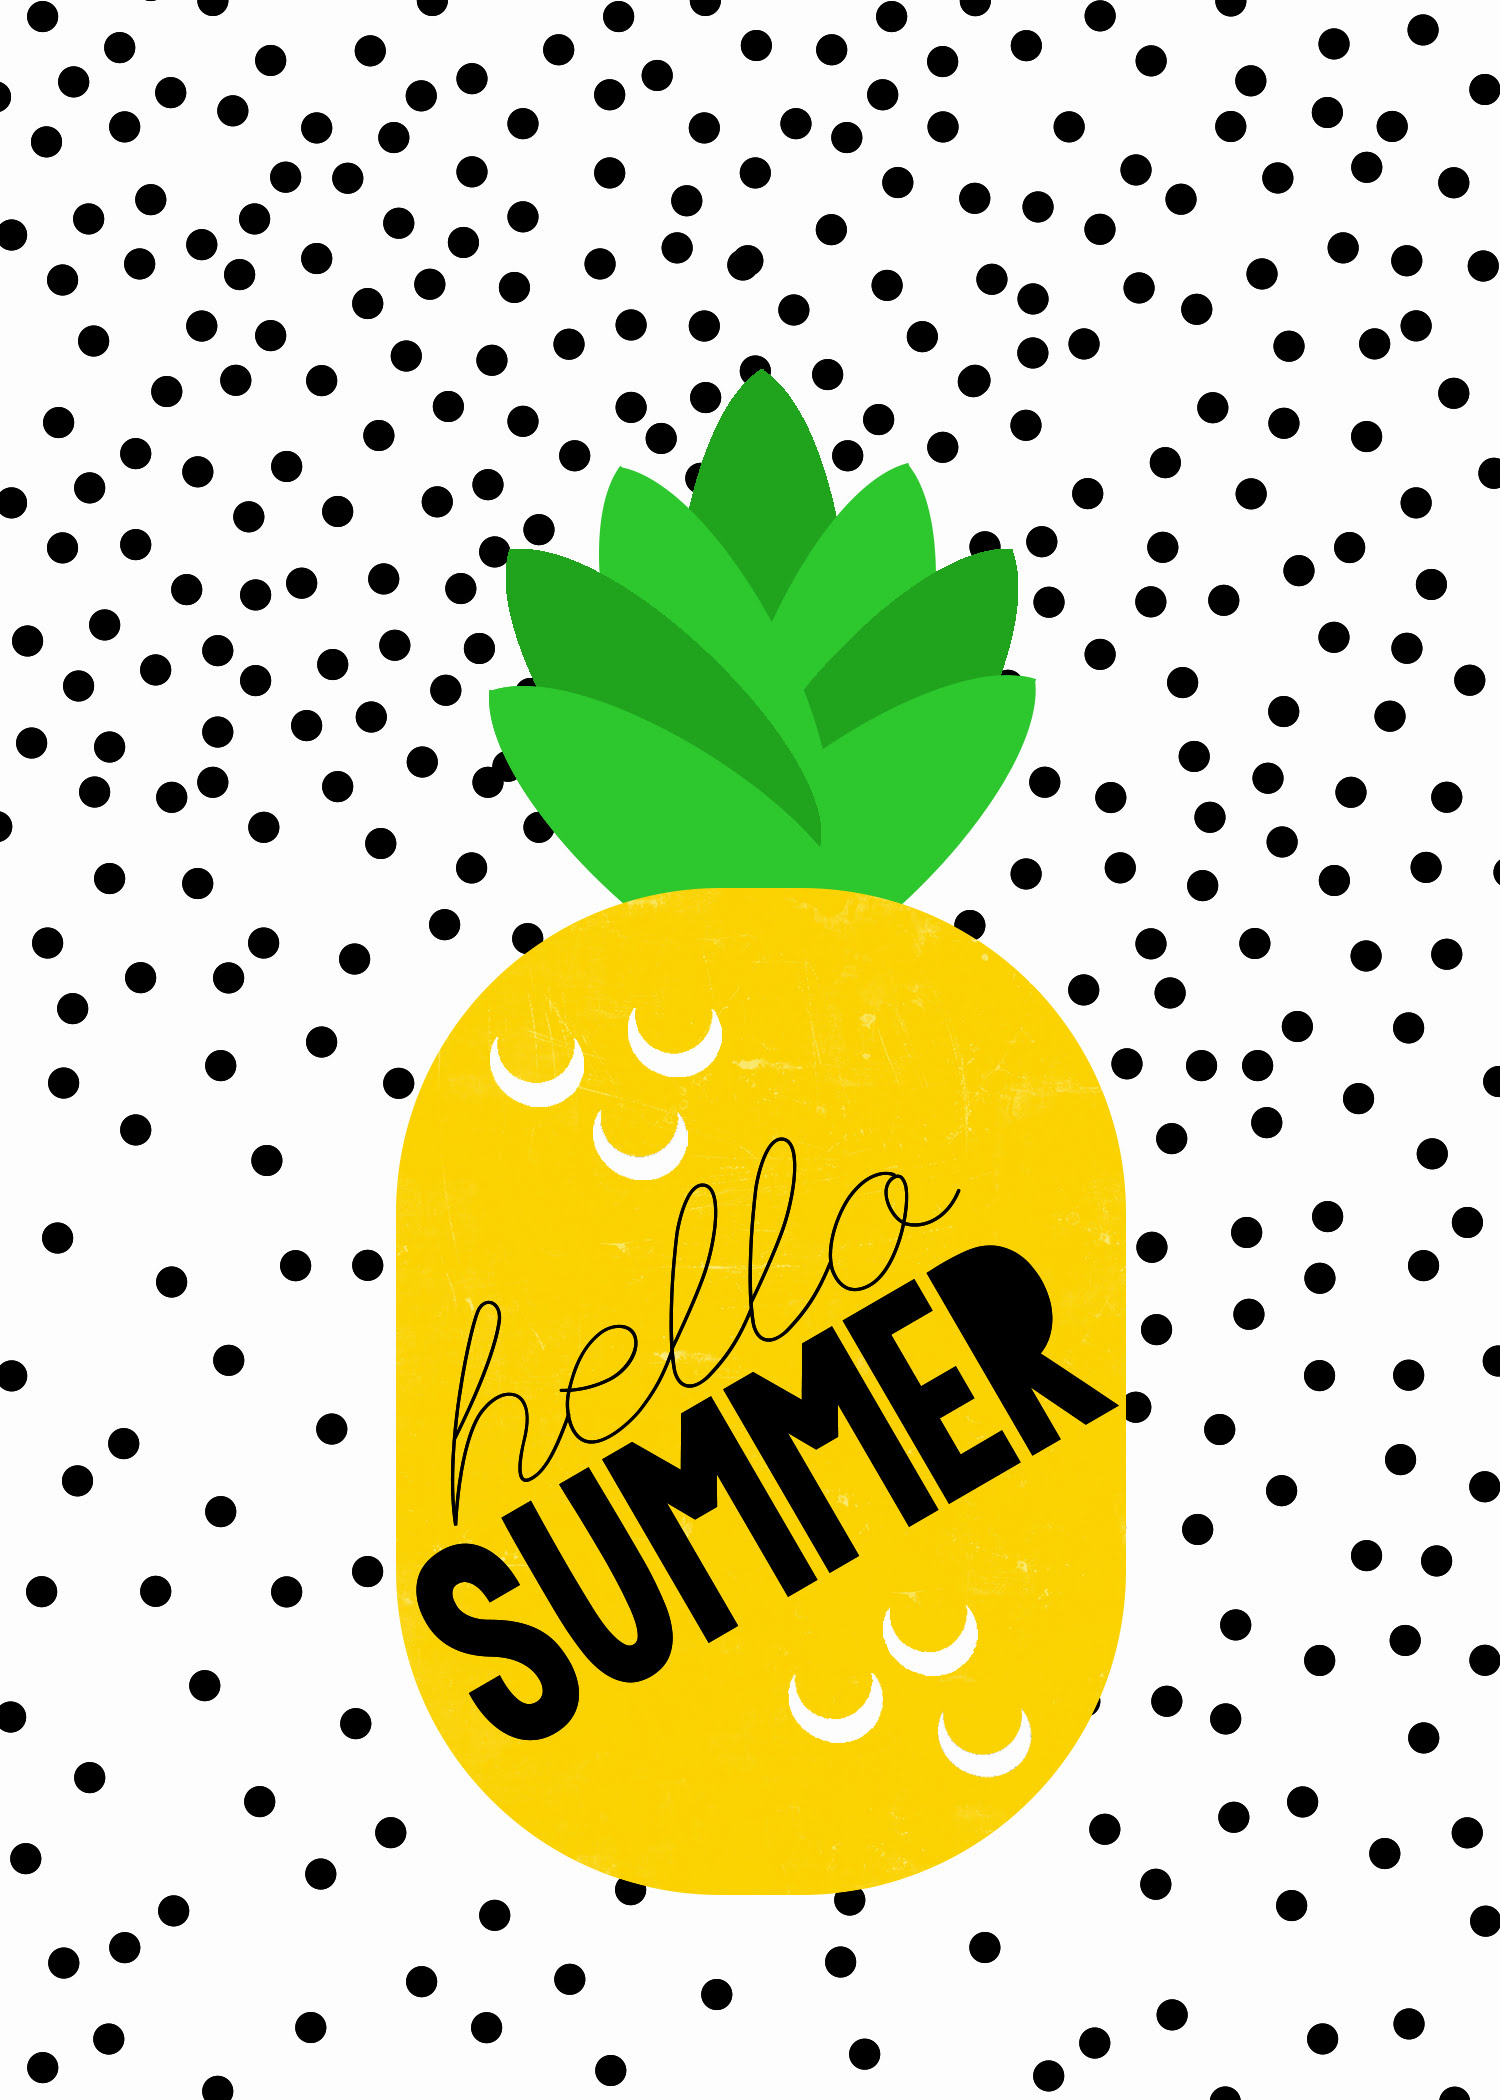 photo relating to Pineapple Printable called Satisfied Summer time Pineapple Printable in opposition to Sbook Playing cards